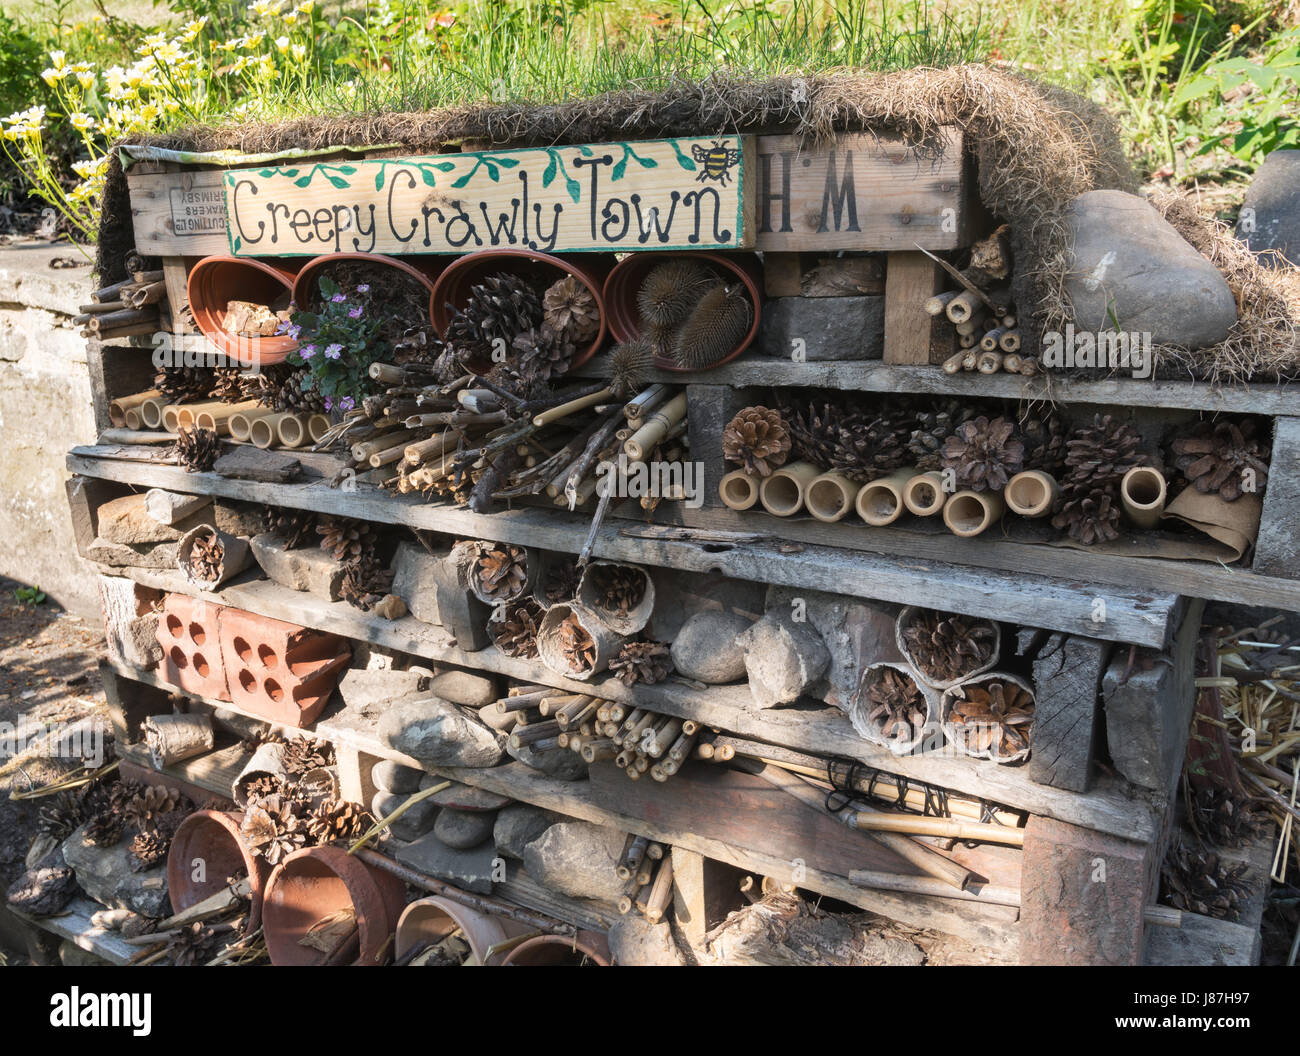 Bug Hotel, or Creepy Crawly Town, Wharton Park, Durham, England, UK - Stock Image